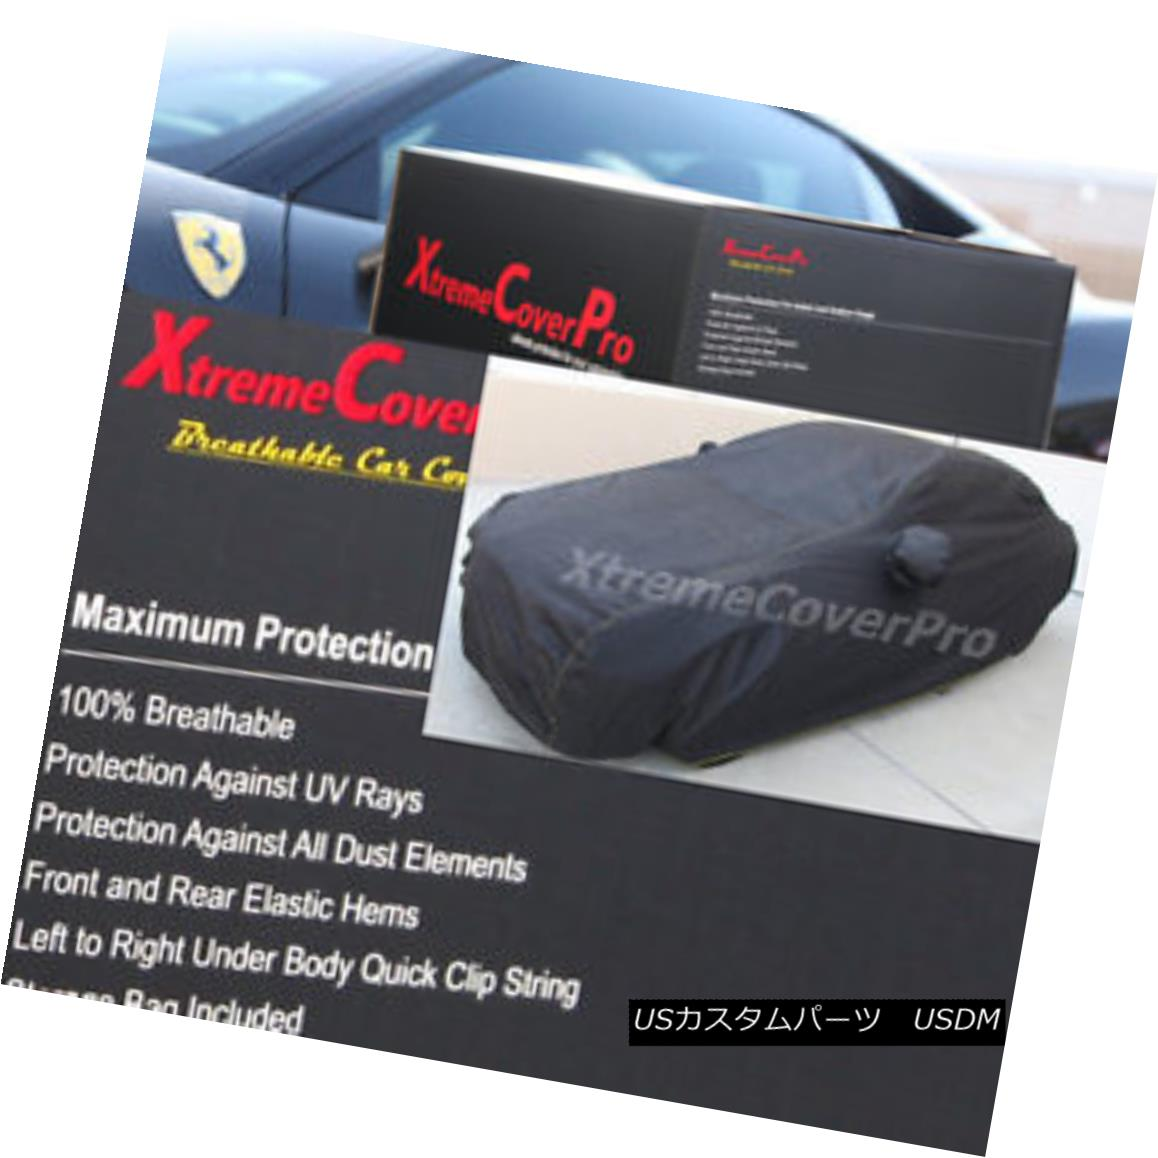 アクセサリー, ボディカバー  2009 2010 Mitsubishi Eclipse Spyder Breathable Car Cover wMirrorPocket 2009MirrorPocket